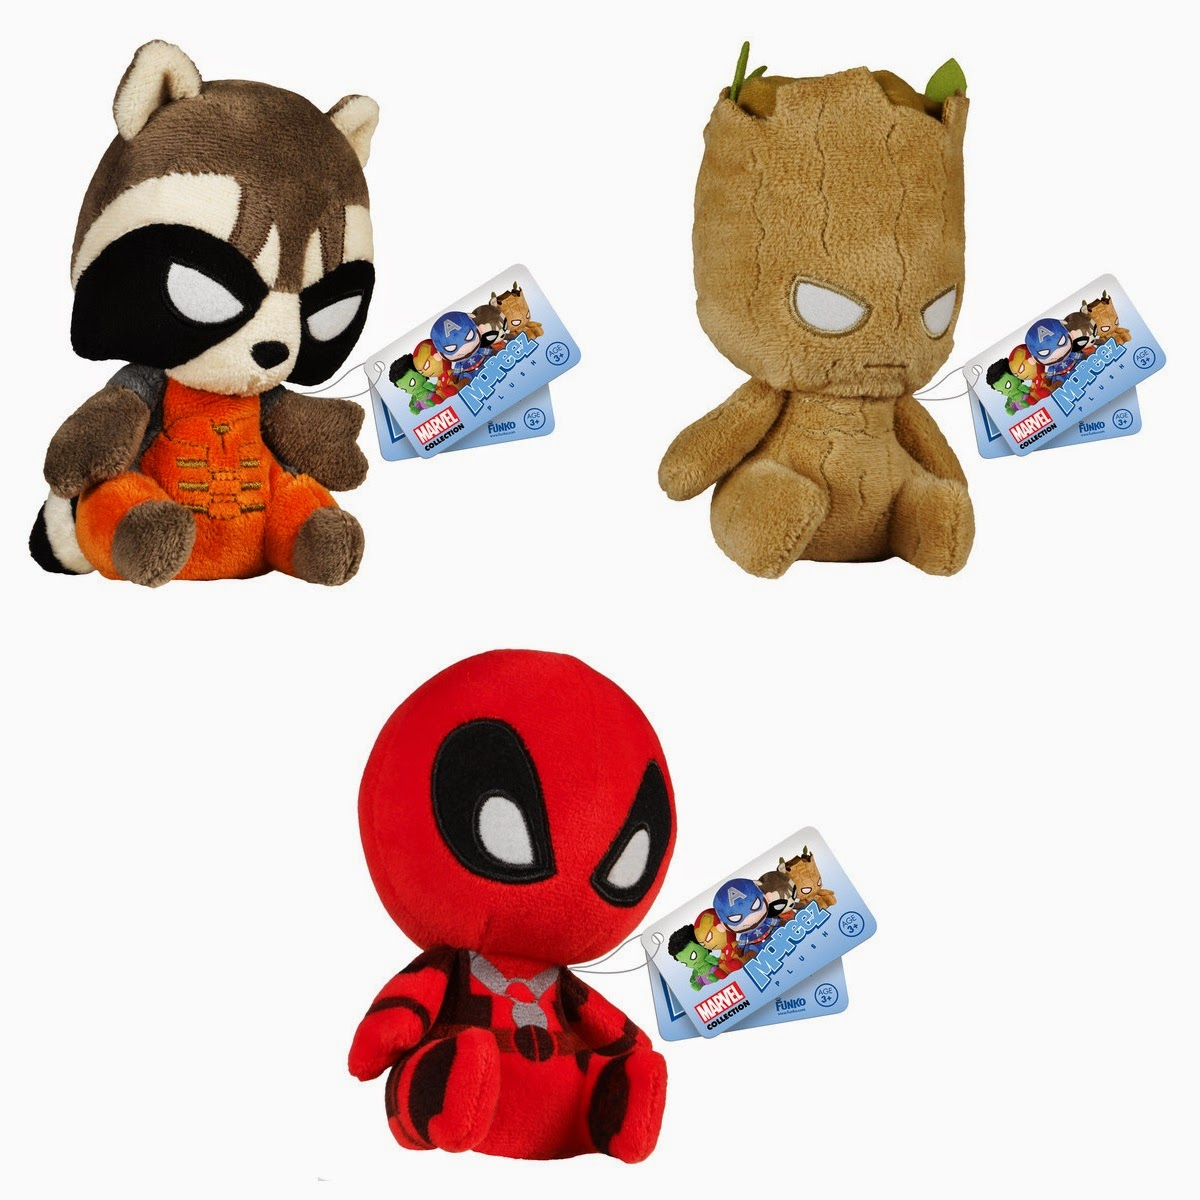 Marvel Mopeez Plush Figures by Funko - Rocket Raccoon, Groot & Deadpool